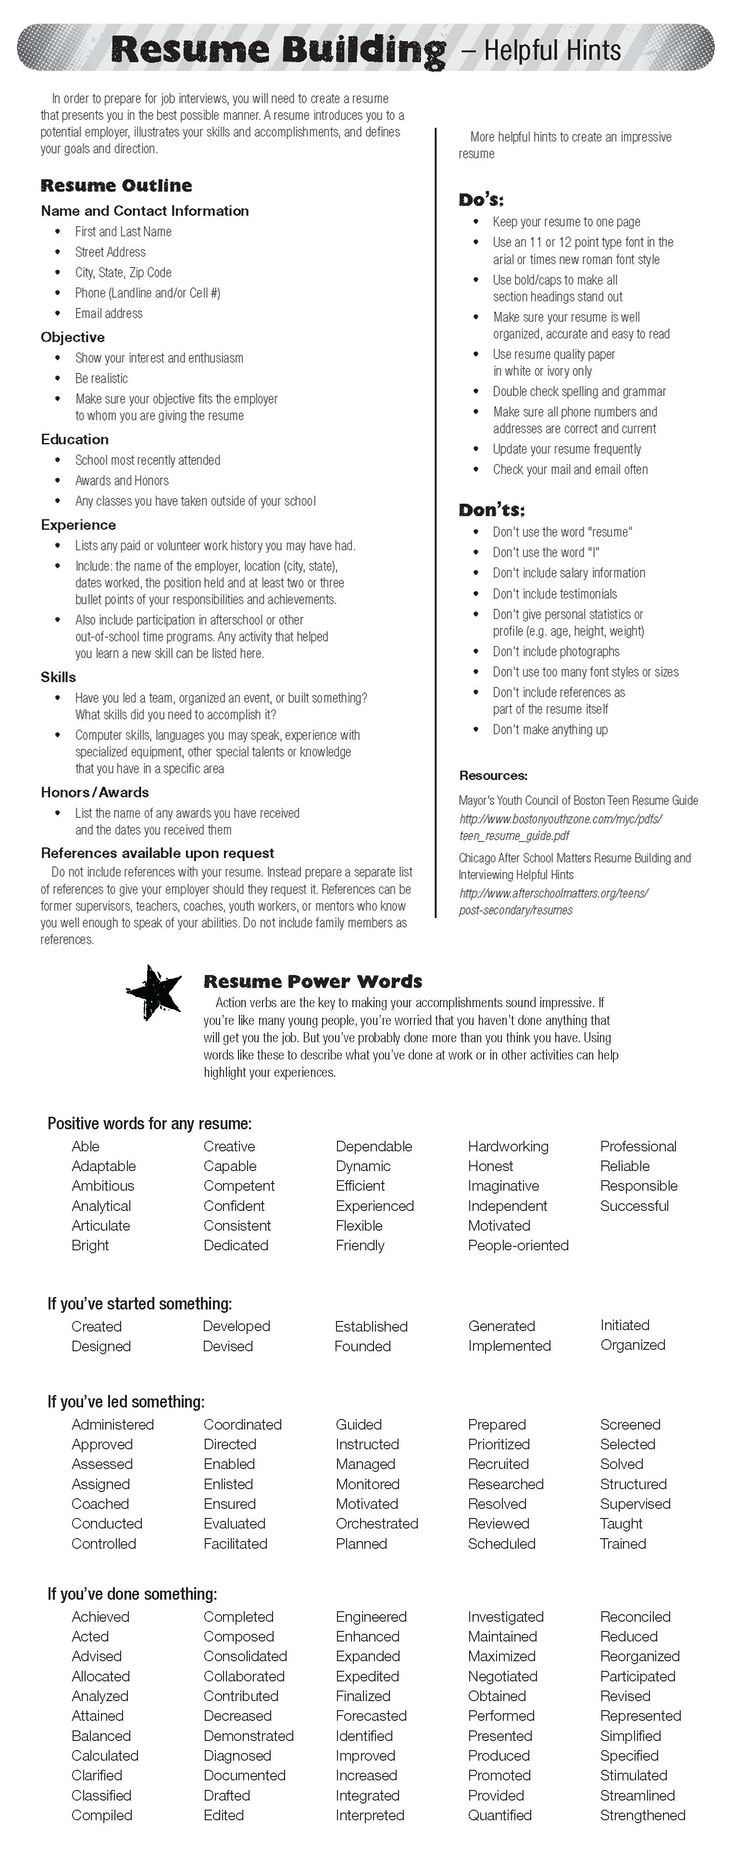 Opposenewapstandardsus  Splendid  Ideas About Resume On Pinterest  Cv Format Resume Cv And  With Engaging  Ideas About Resume On Pinterest  Cv Format Resume Cv And Resume Templates With Captivating Resume For Tutor Also Cover Letter For Resume Samples In Addition What Is The Best Format For A Resume And Undergraduate Student Resume As Well As It Tech Resume Additionally Reading Specialist Resume From Pinterestcom With Opposenewapstandardsus  Engaging  Ideas About Resume On Pinterest  Cv Format Resume Cv And  With Captivating  Ideas About Resume On Pinterest  Cv Format Resume Cv And Resume Templates And Splendid Resume For Tutor Also Cover Letter For Resume Samples In Addition What Is The Best Format For A Resume From Pinterestcom